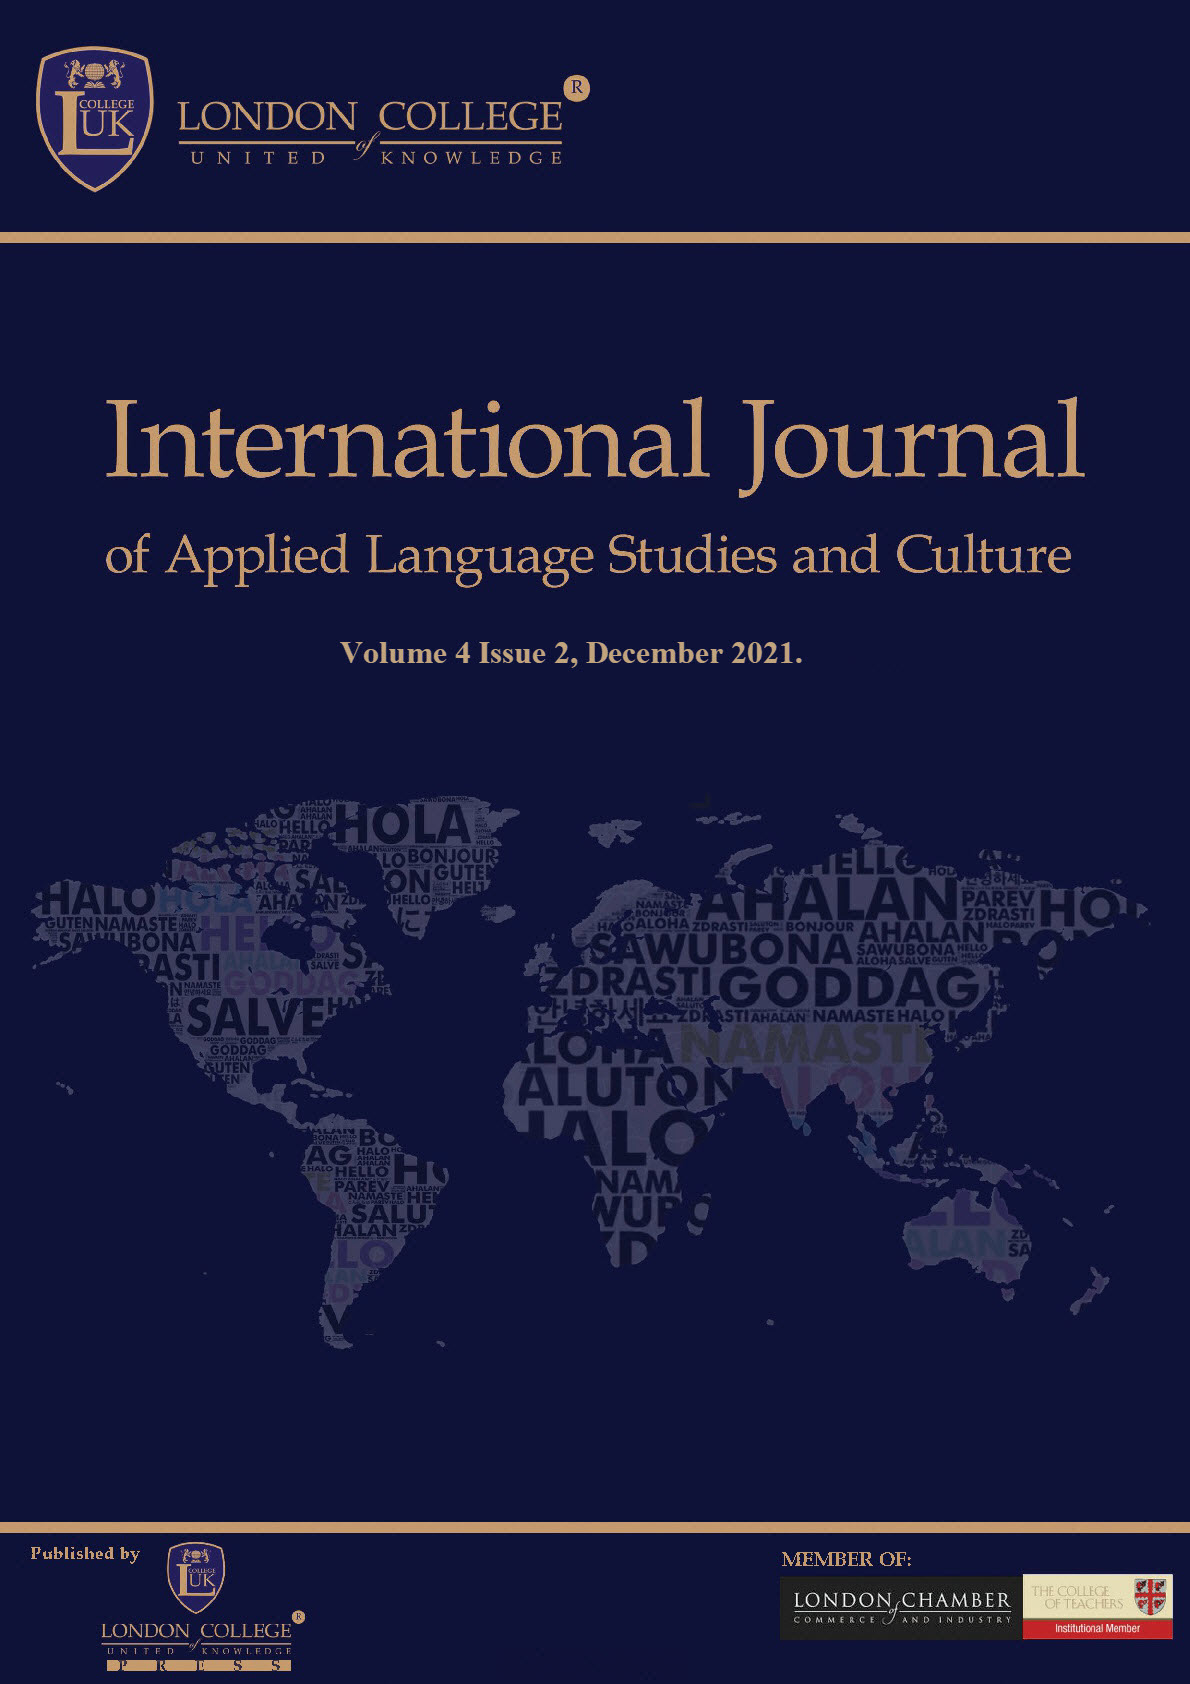 THE INTERNATIONAL JOURNAL OF APPLIED LANGUAGE AND CULTURAL STUDIESTHE INTERNATIONAL JOURNAL OF APPLIED LANGUAGE STUDIES AND CULTURE (IJALSC)